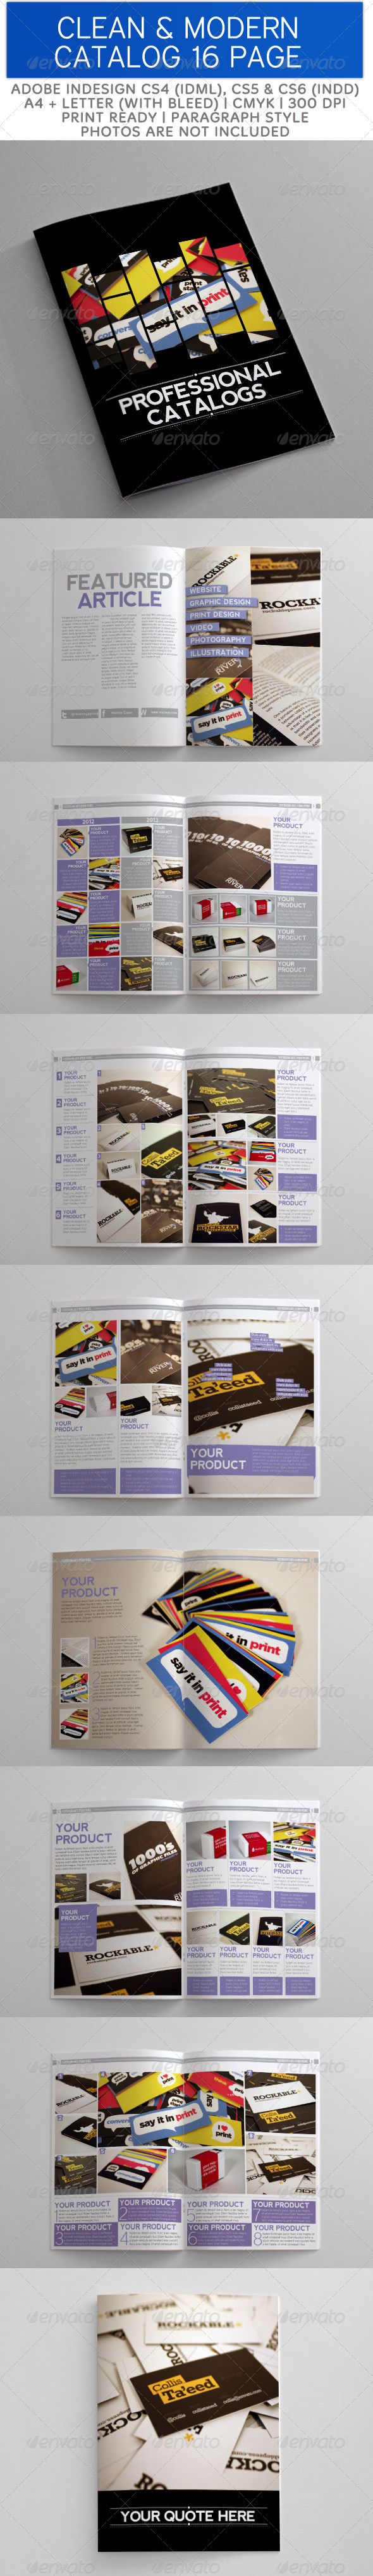 GraphicRiver Clean and Modern Catalog Template 16 Page 3399984